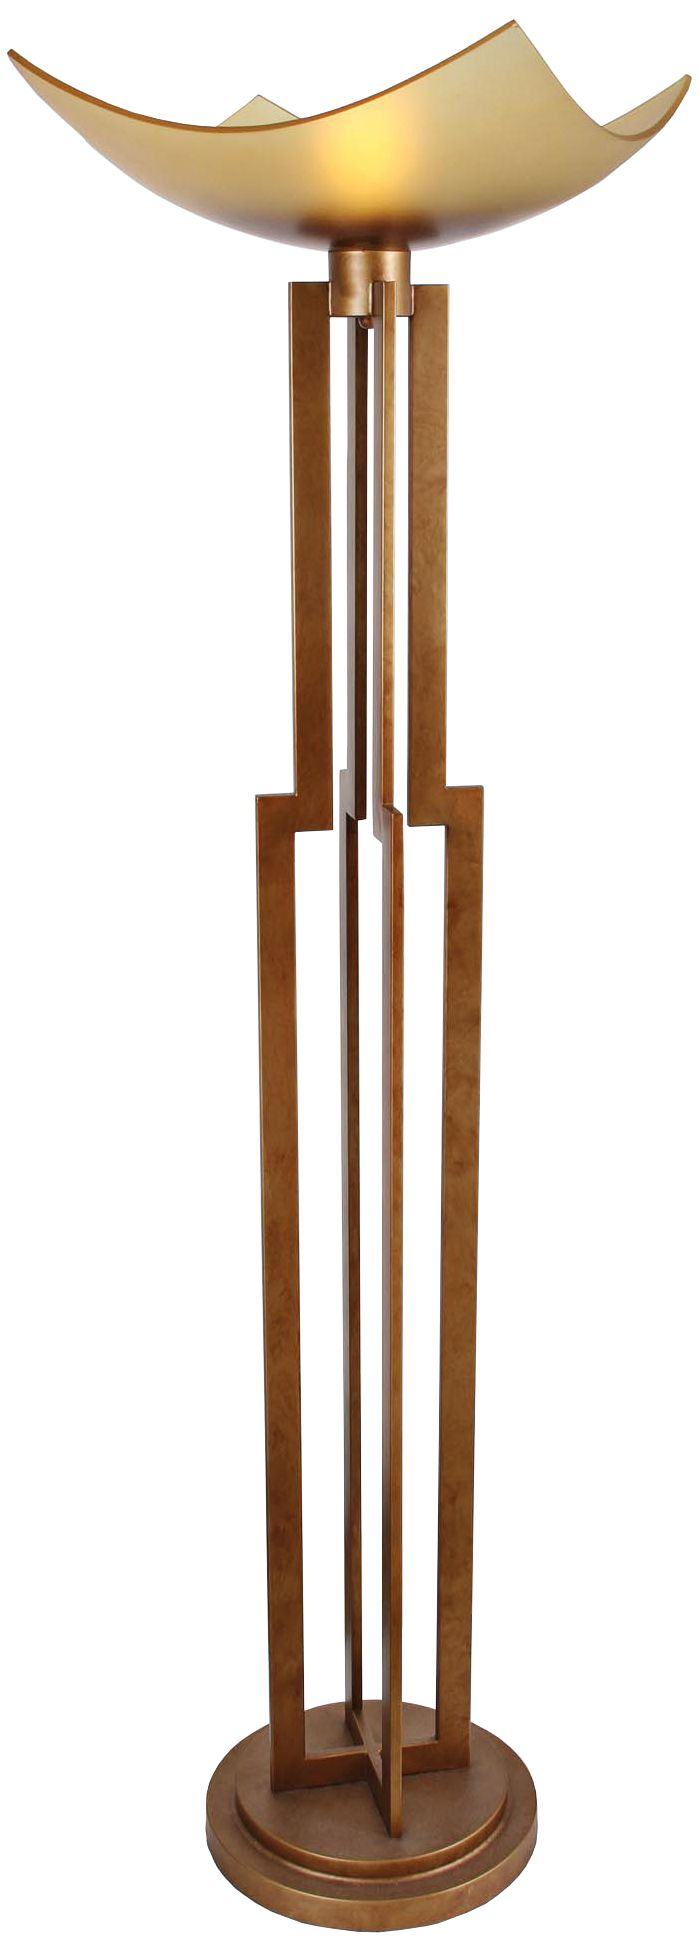 Van Teal On Duty Sienna Gold Torchiere Floor Lamp